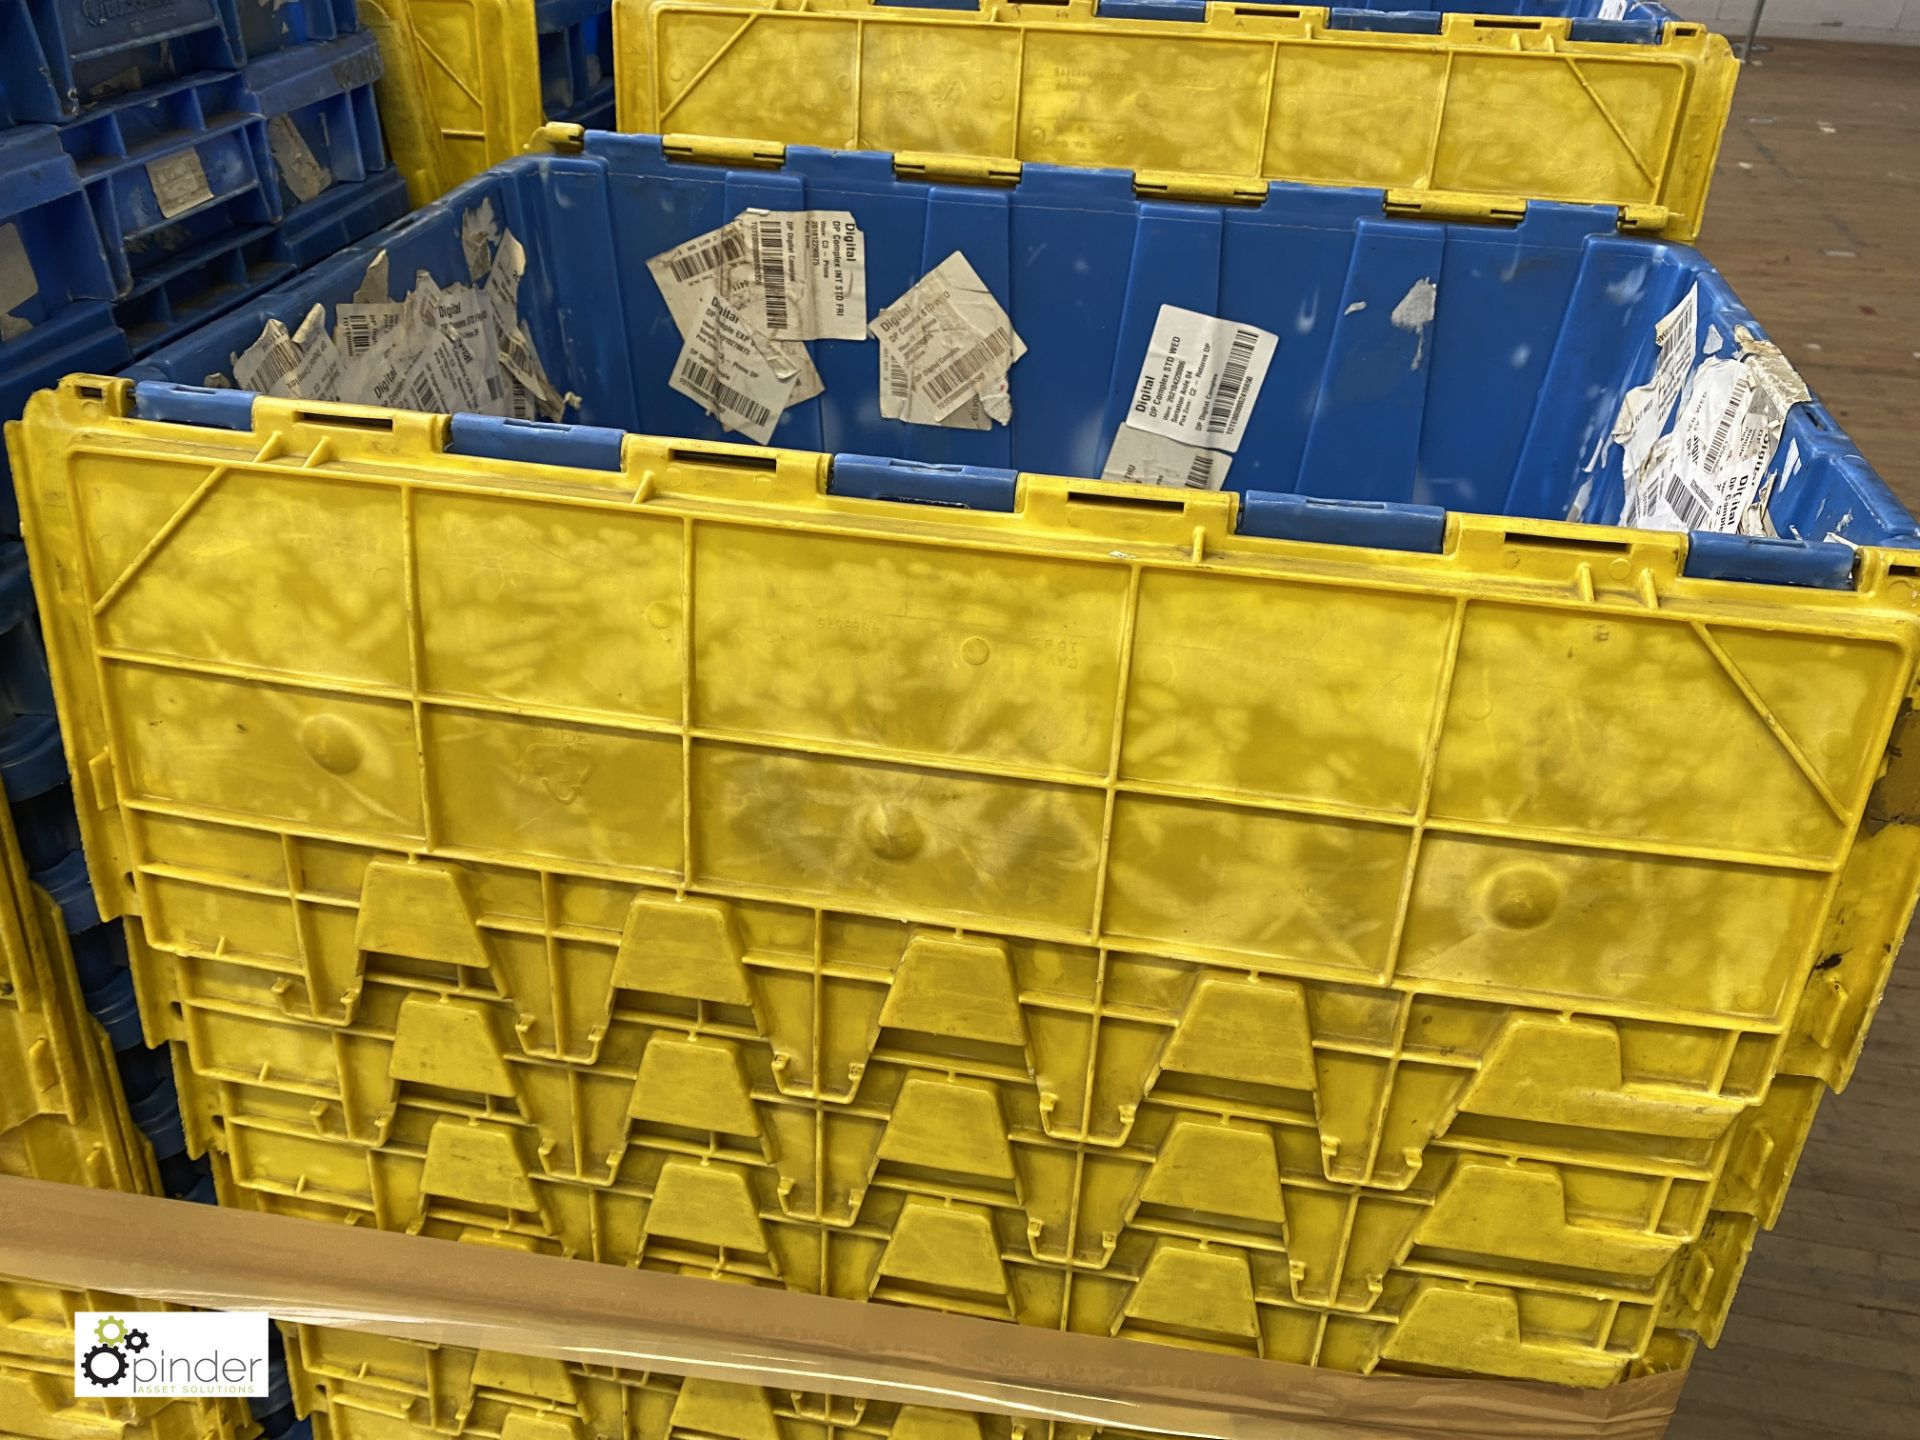 Approx. 67 Buckhorn stackable plastic Storage Containers, 640mm x 380mm x 300mm, with interlocking - Image 4 of 5